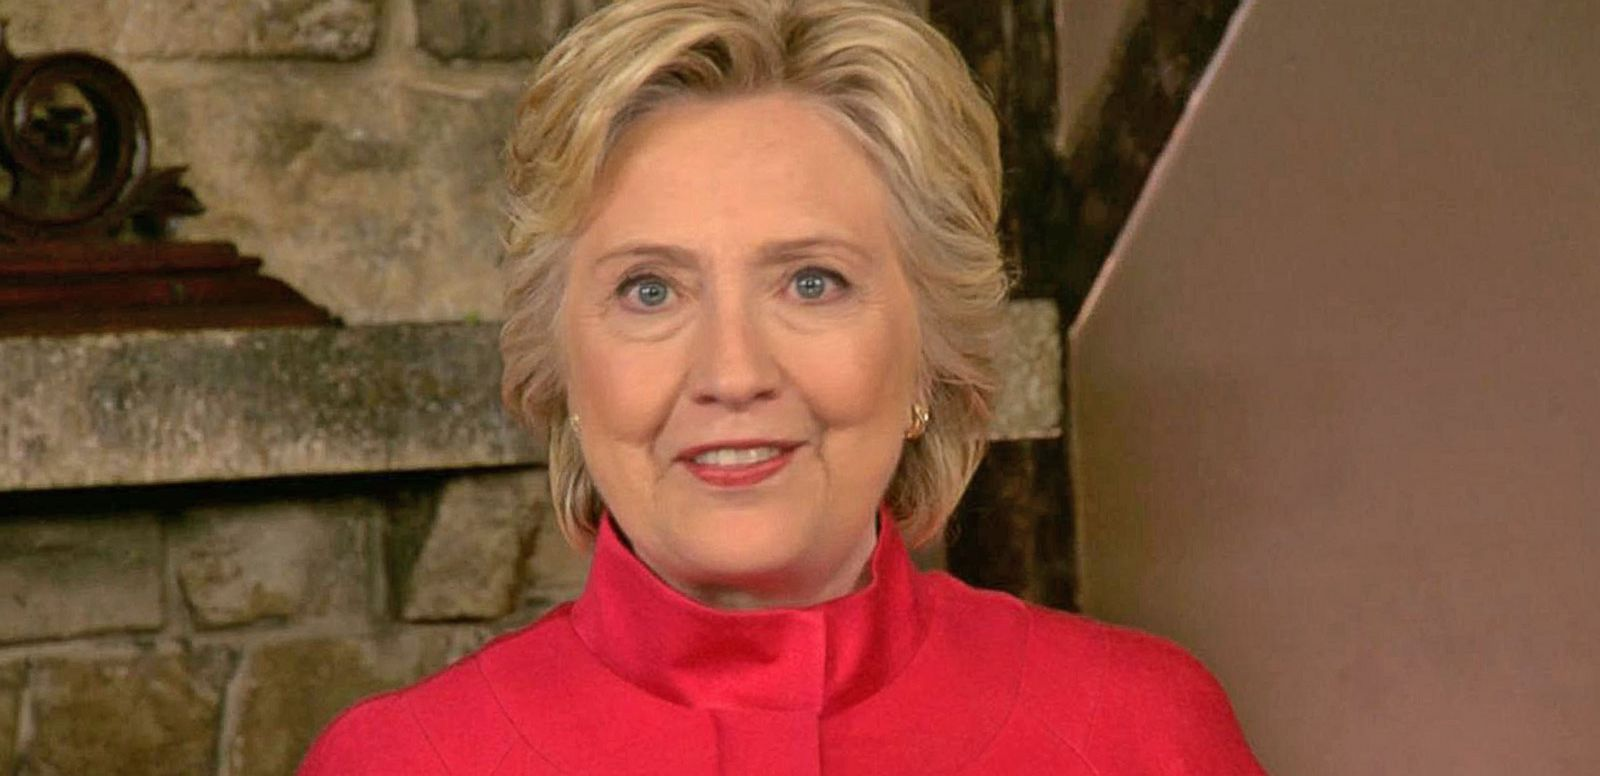 VIDEO: Hillary Clinton Speaks to DNC in Surprise Appearance